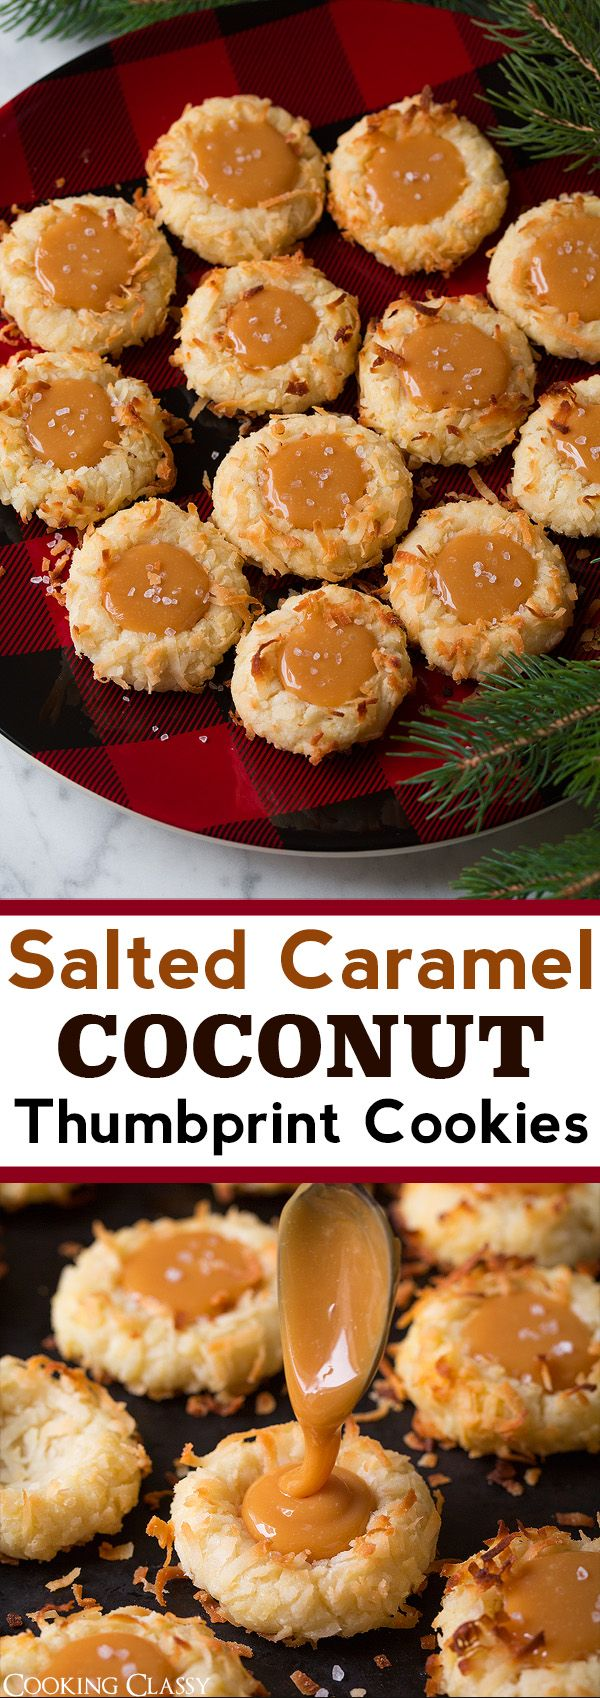 Salted Caramel Coconut Thumbprint Cookies - these cookies are unbelievably delicious! Definitely a repeat recipe.